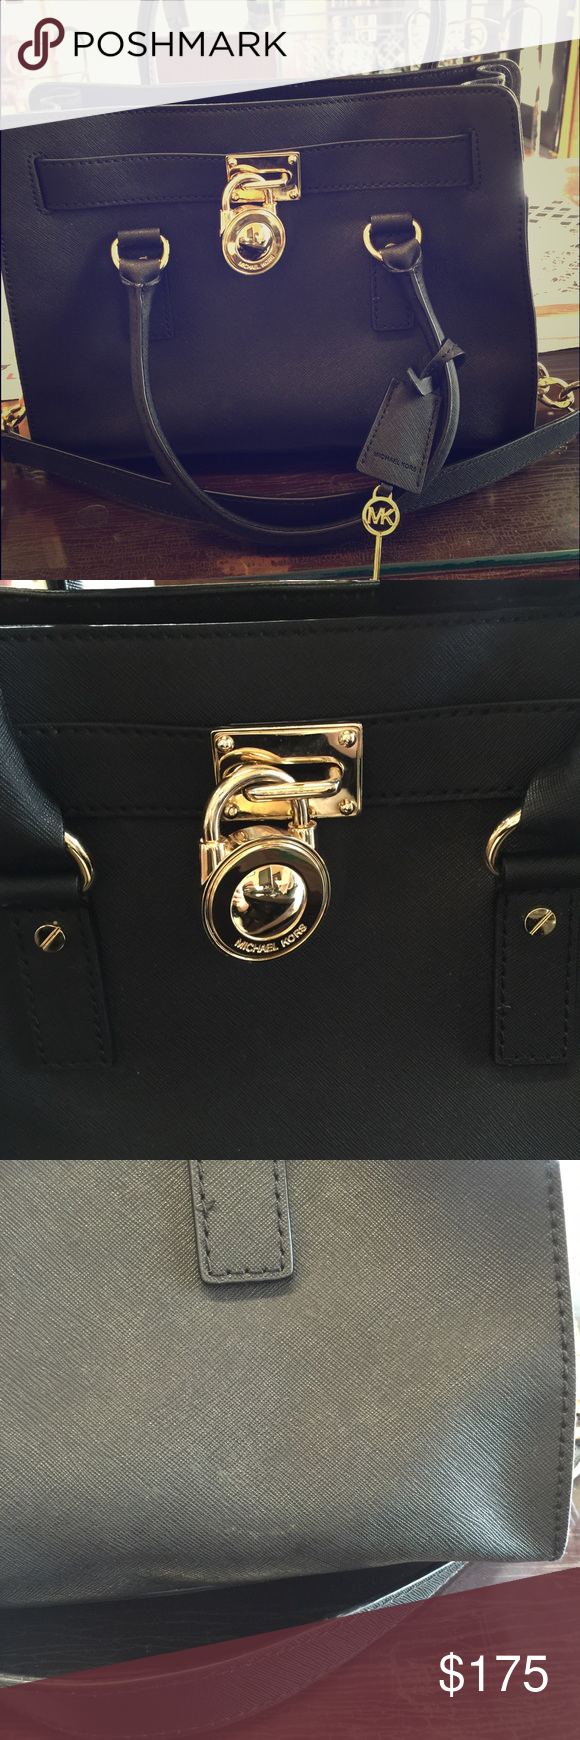 Spotted while shopping on Poshmark  New with defects Michael Kors Saffiano  Hamilton!  poshmark  fashion  shopping  style  Michael Kors  Handbags 24d22e4d8a